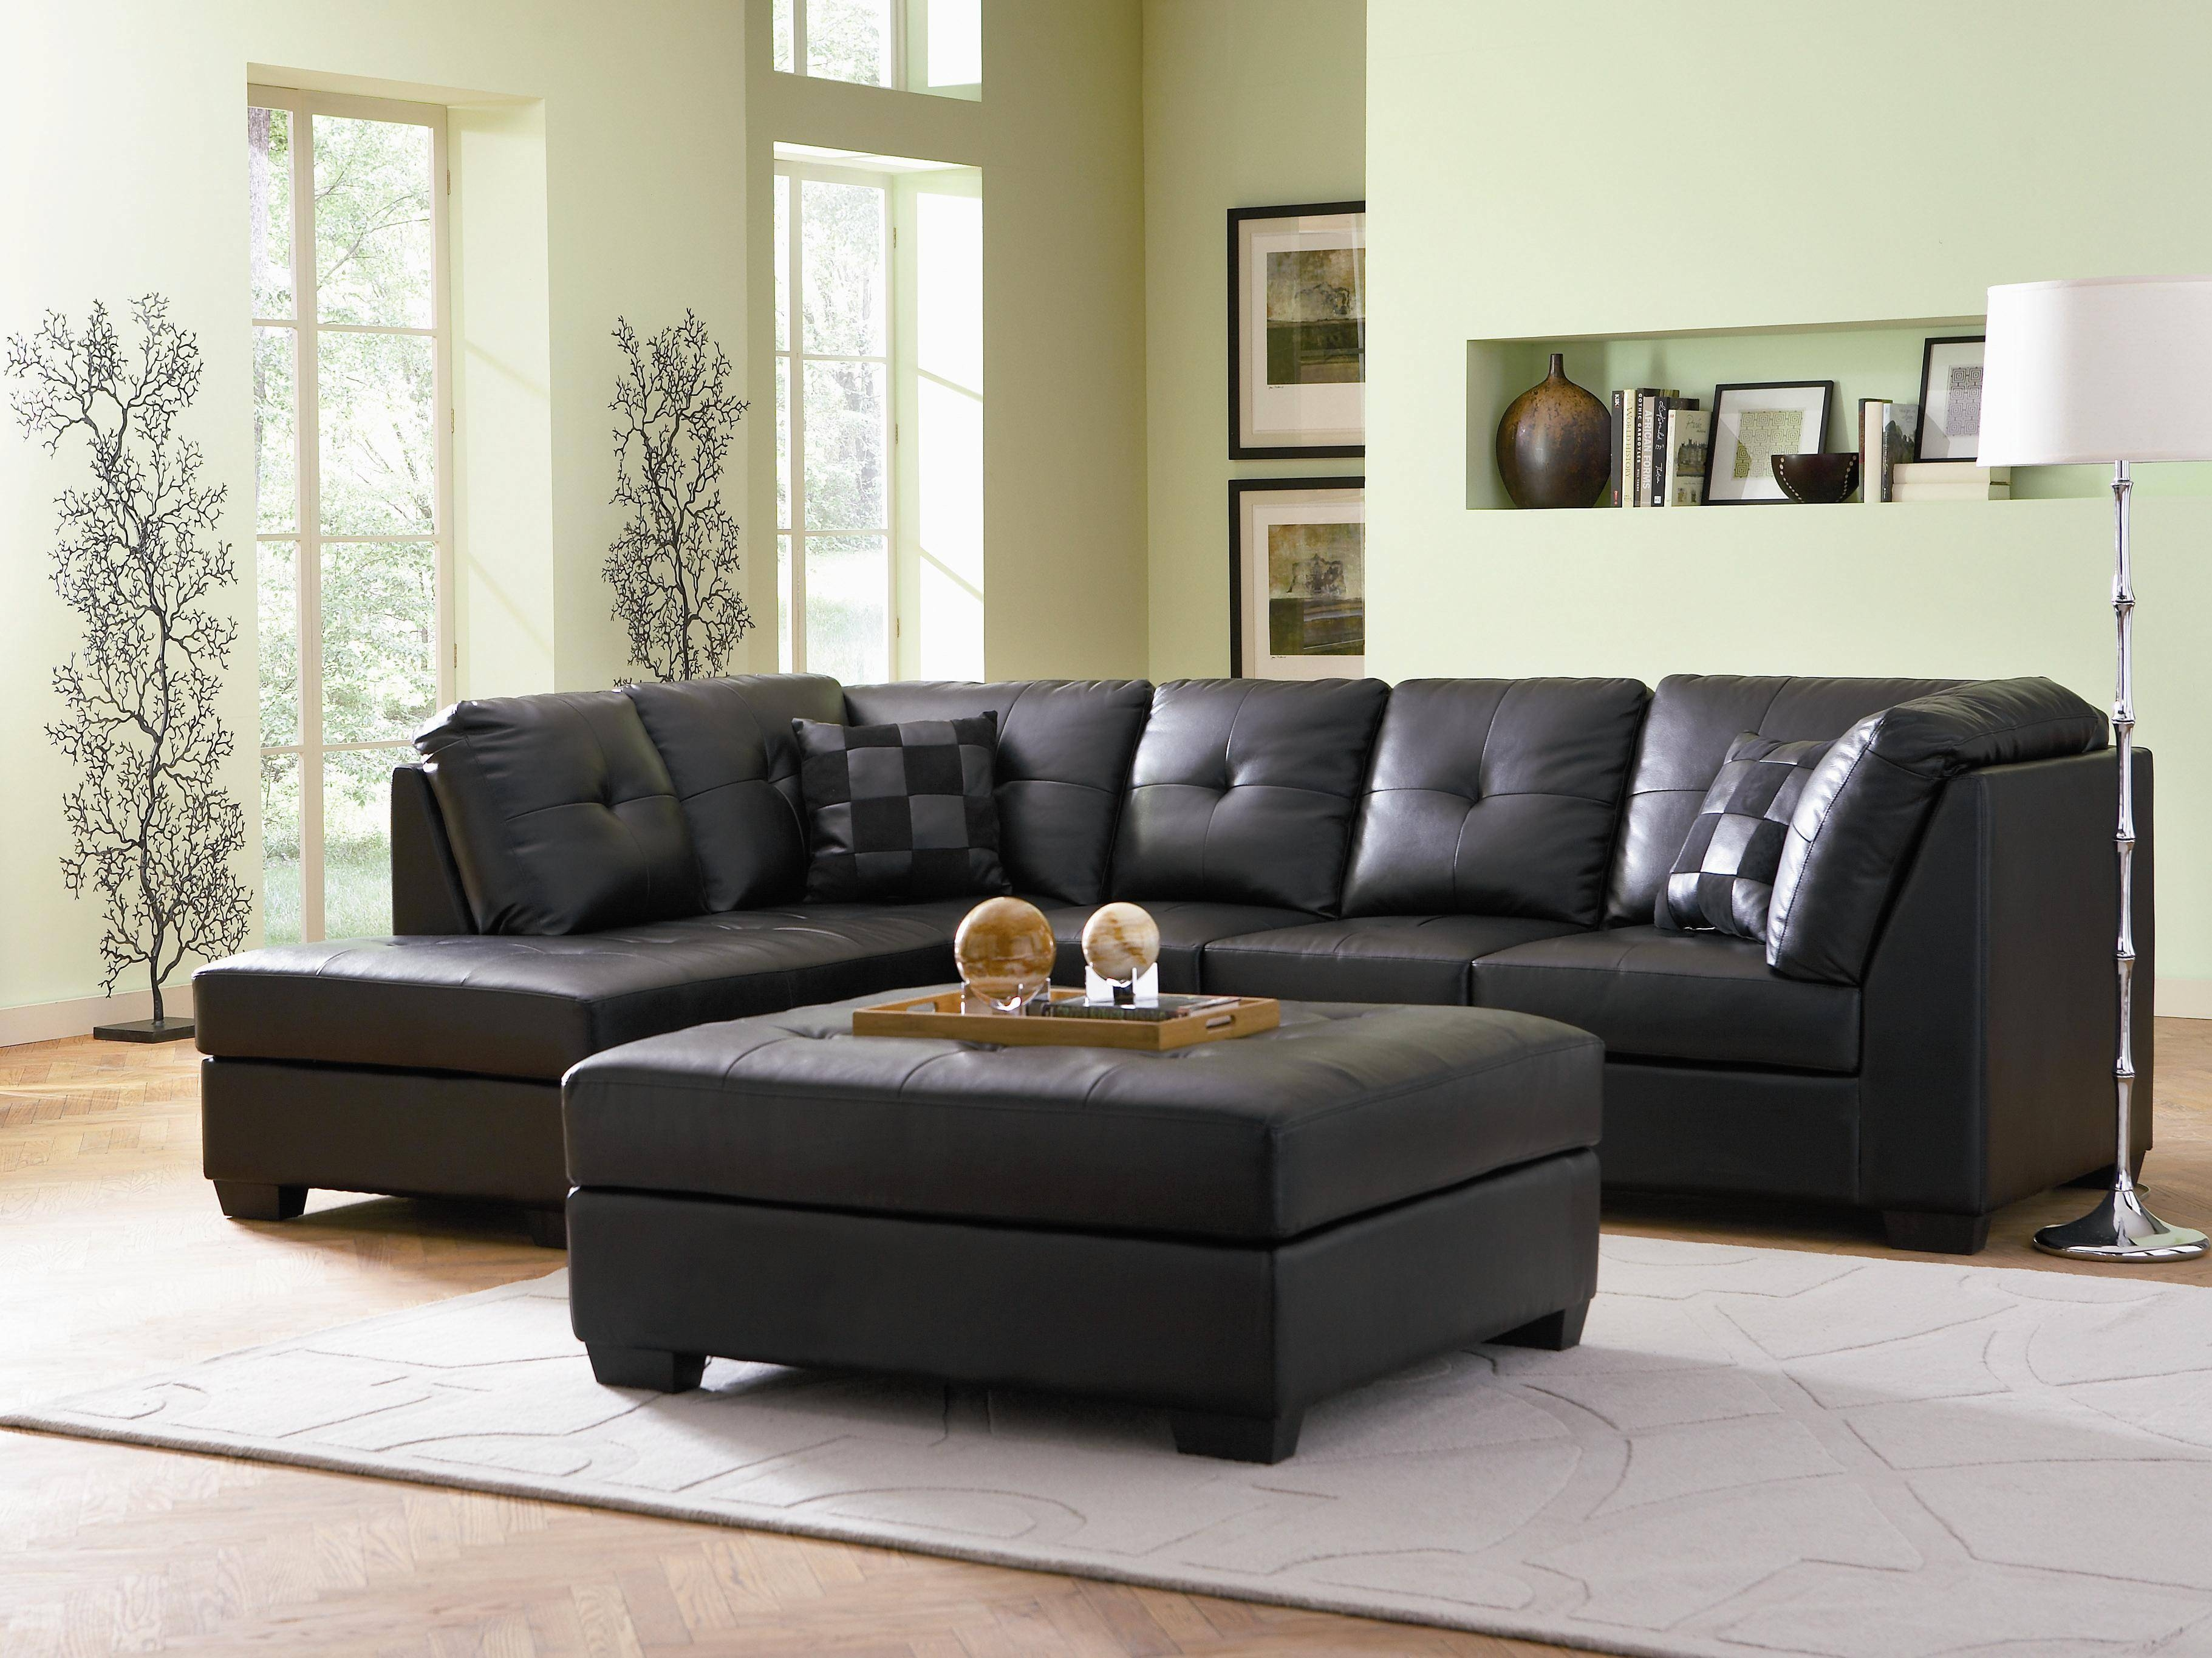 Coaster Darie Leather Sectional Sofa With Left Side Chaise In Contemporary Black Leather Sectional Sofa Left Side Chaise (View 8 of 30)